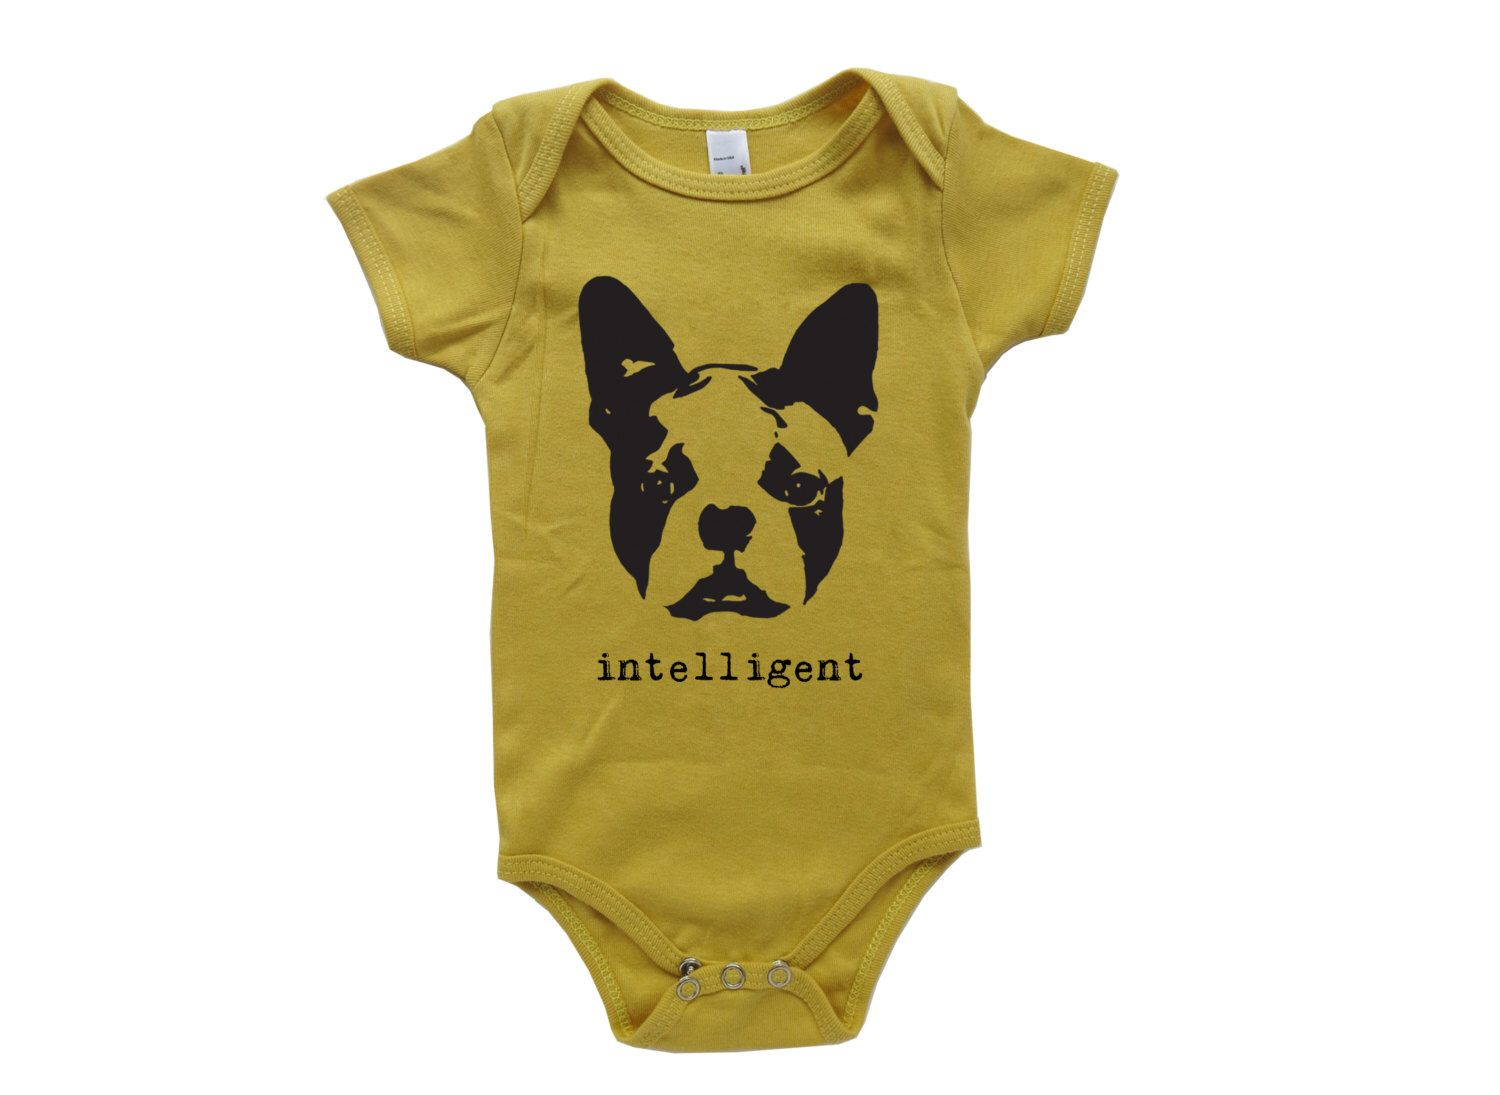 Boston Terrier Organic Baby Onesie, Organic Newborn Shirt, Organic Baby Clothes, Toddler Boy Clothes, Girl Baby Shower, Hipster Dog Mom Gift by MONOFACES on Etsy https://www.etsy.com/listing/232261548/boston-terrier-organic-baby-onesie